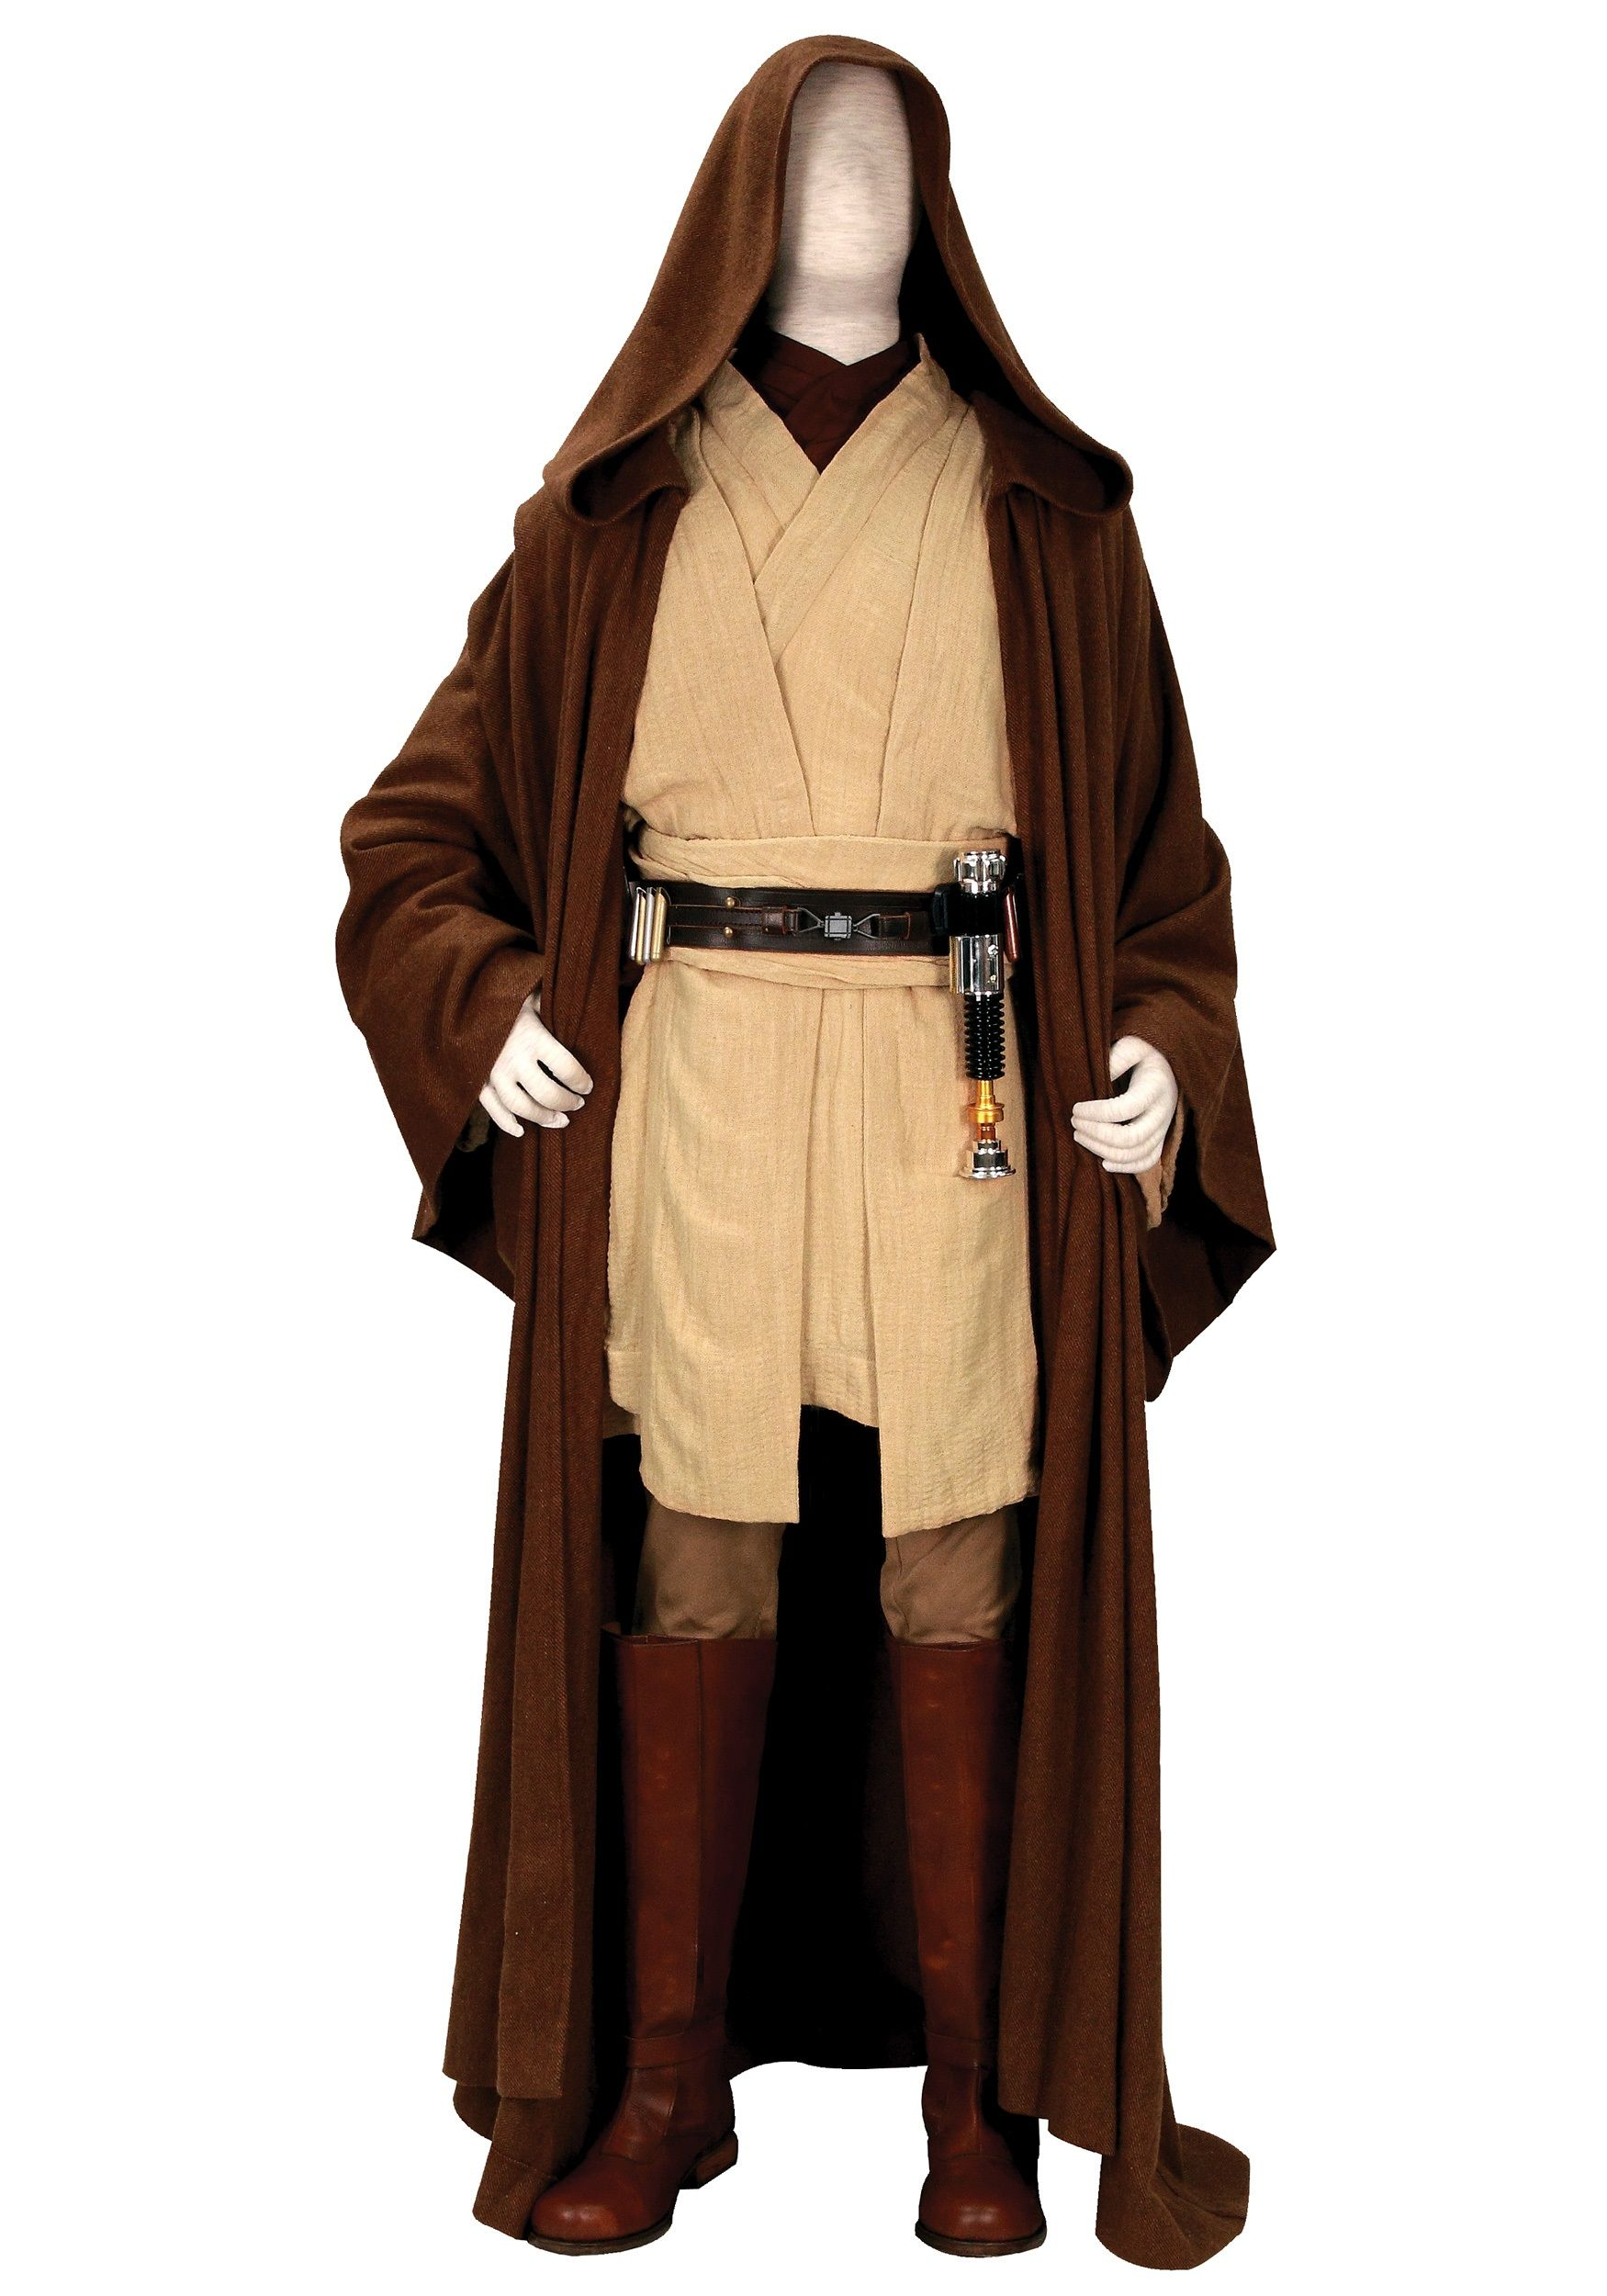 7a85106328 obi wan kenobi costume for Dave. maybe I can find a cloak pattern of some  sort